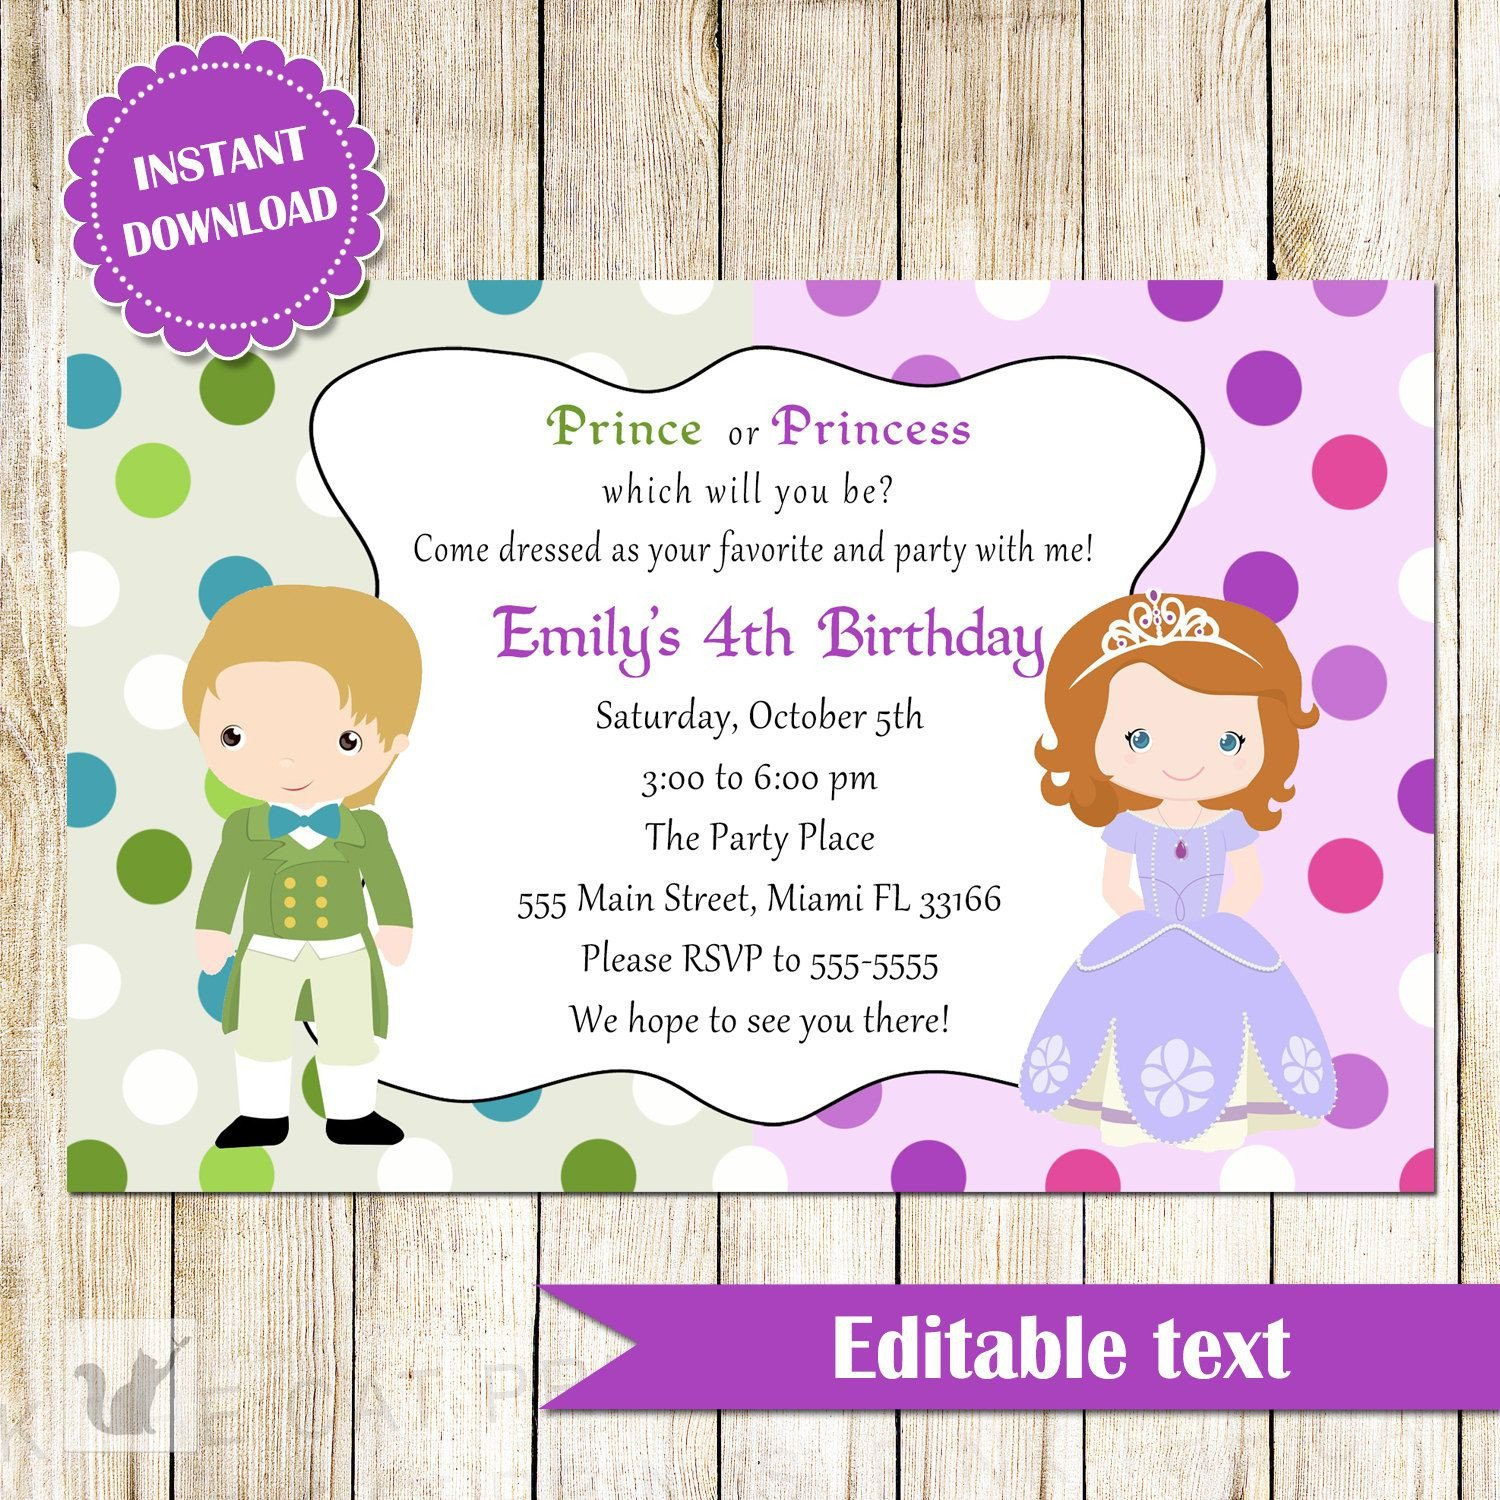 Kids Birthday Invitation Template Childrens Birthday Party Invites toddler Birthday Party